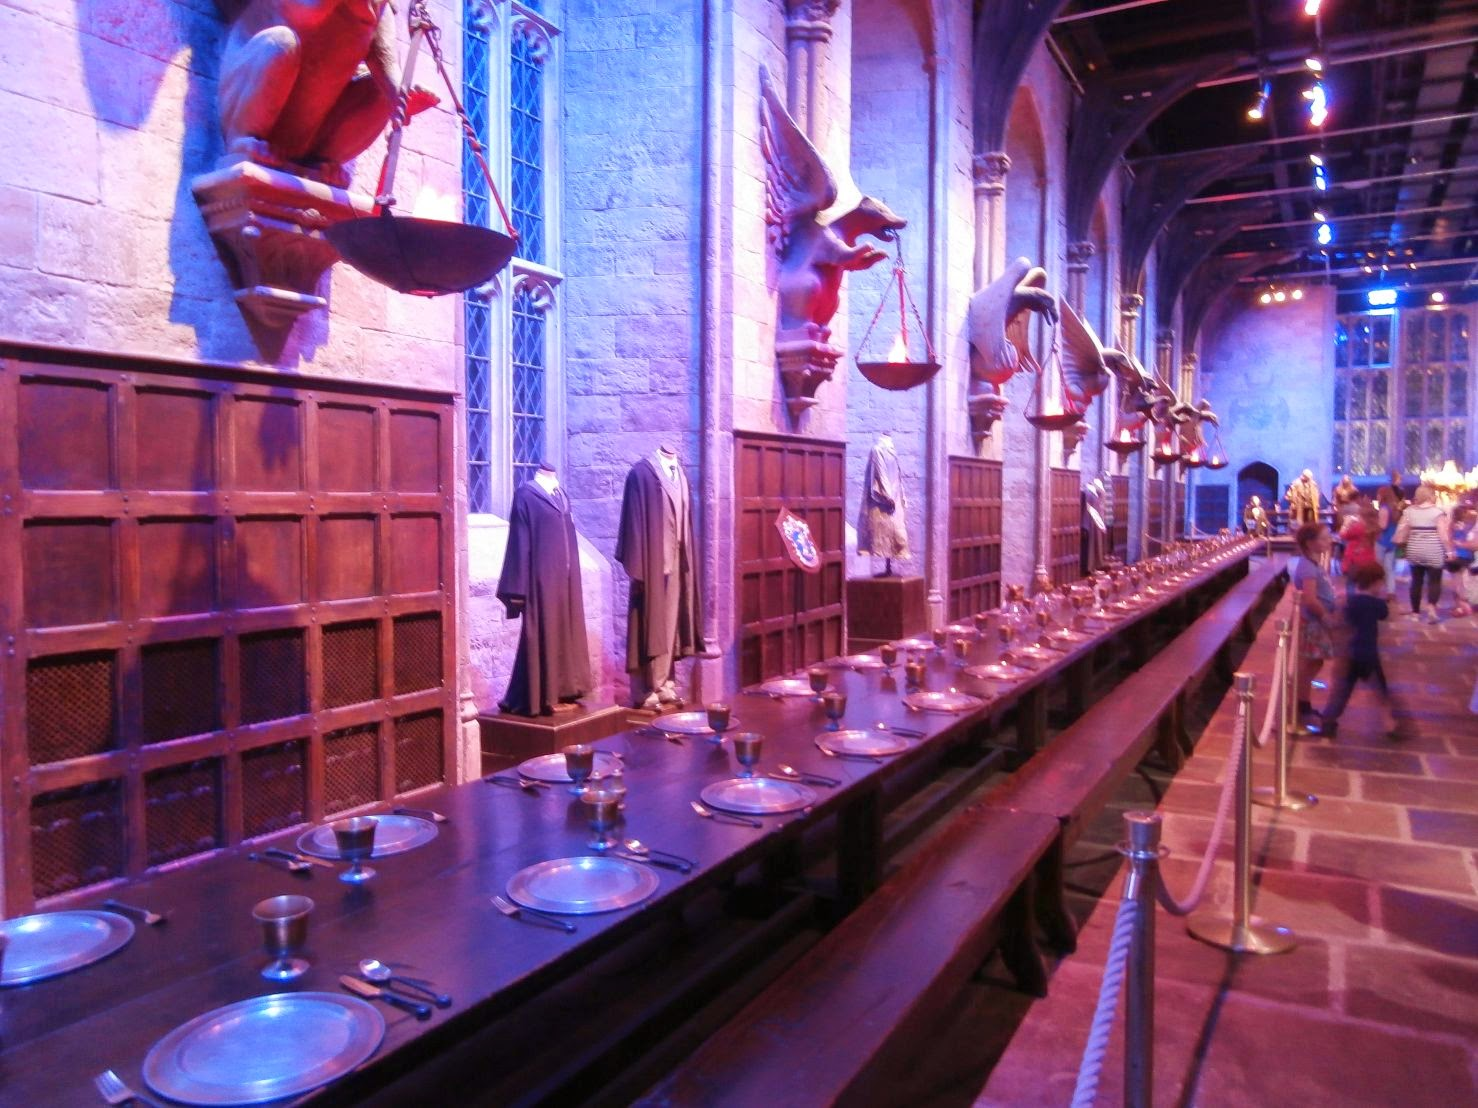 Comedor del Castillo Hogwarts, Warner Bros Studio, Harry Potter, Londres